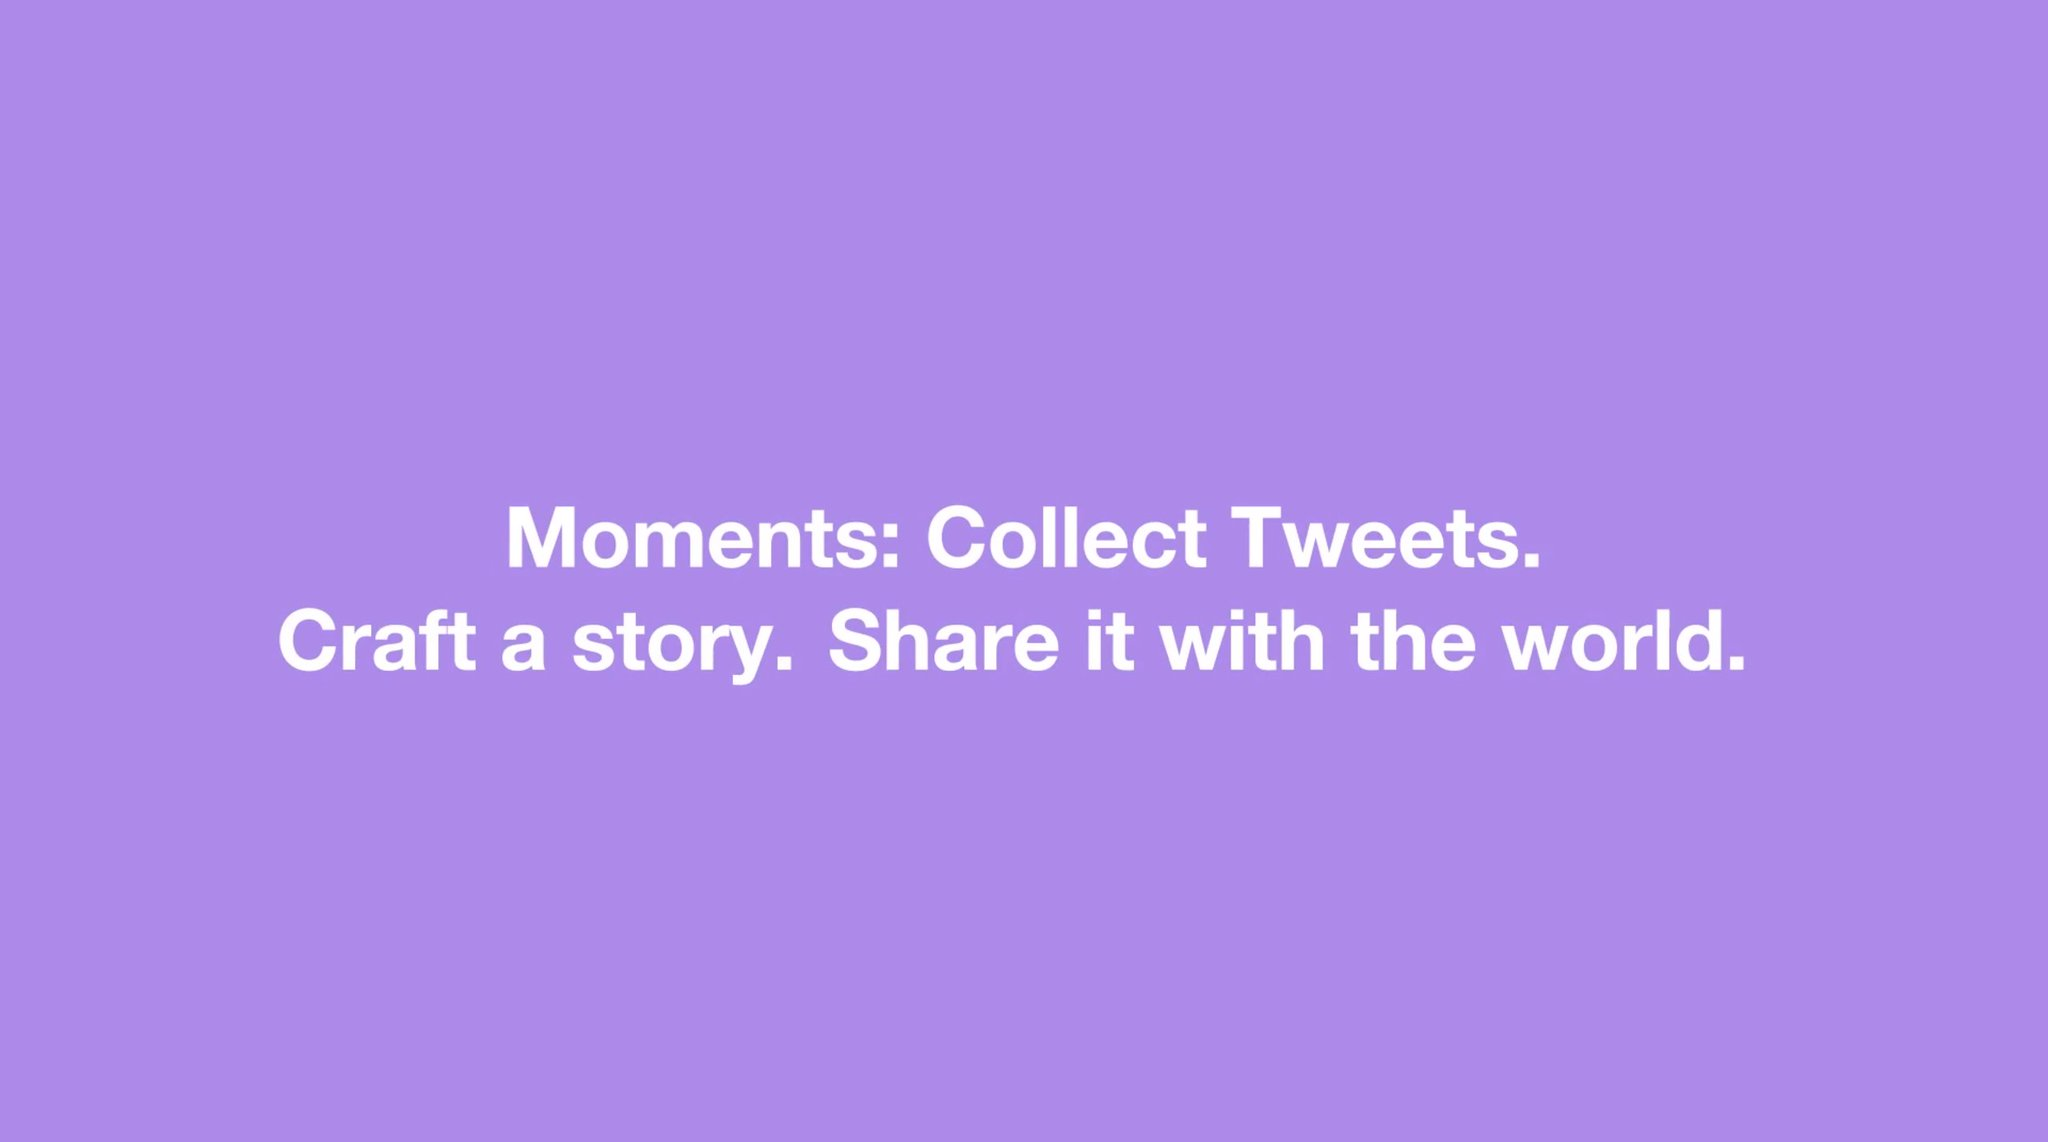 What'd you do over the holidays?  Turn your memories into a Moment in time, and share yours with #HolidayMoments! https://t.co/8wAkuUuLSh